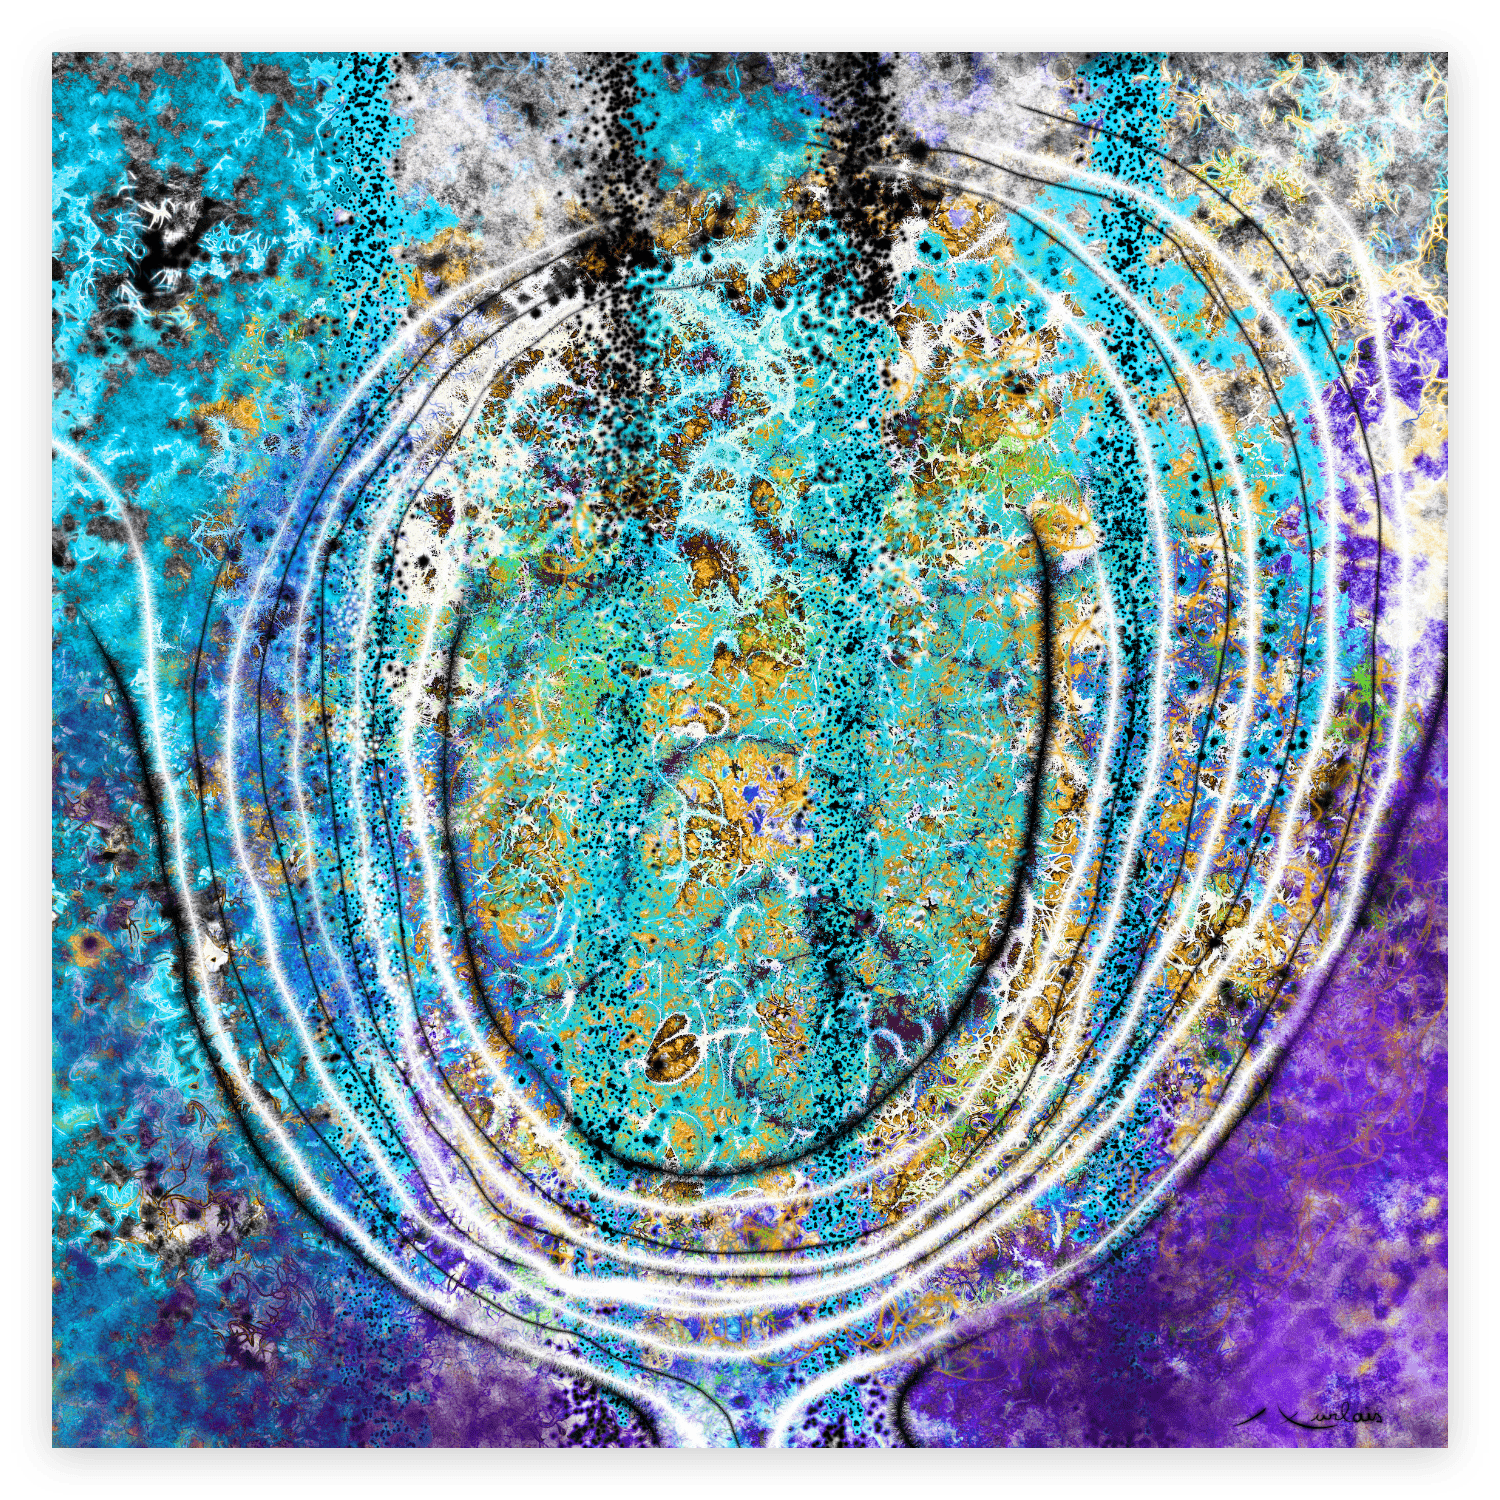 First Image of 'Floral Stone'. Beautiful artwork inspired from Occitanie's nature. artist: Anne Turlais - Limited edition of 300. Abstract floral art printed on Dibond.